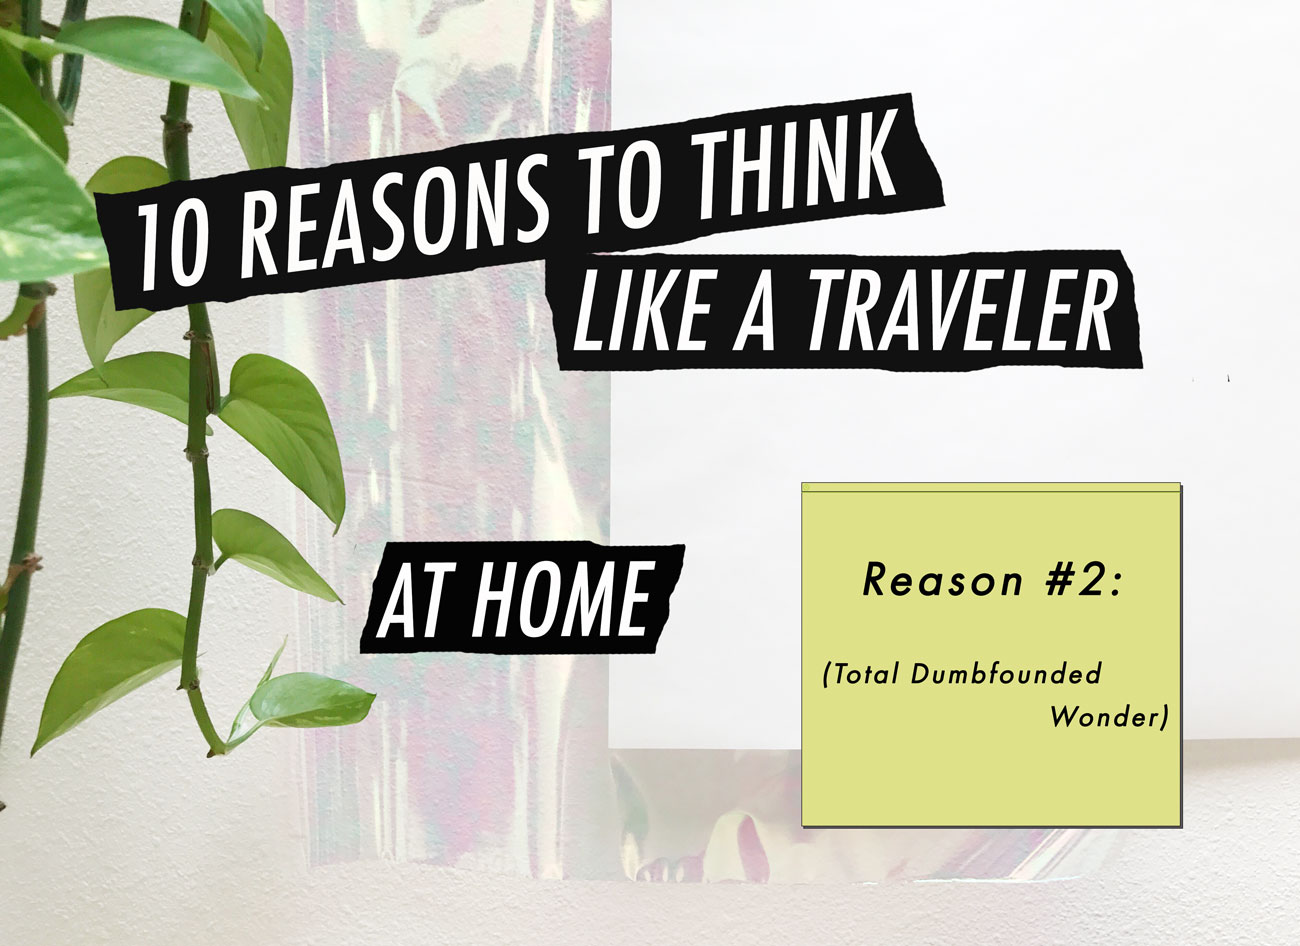 10Reasons_Reason2_Local(Tourist)